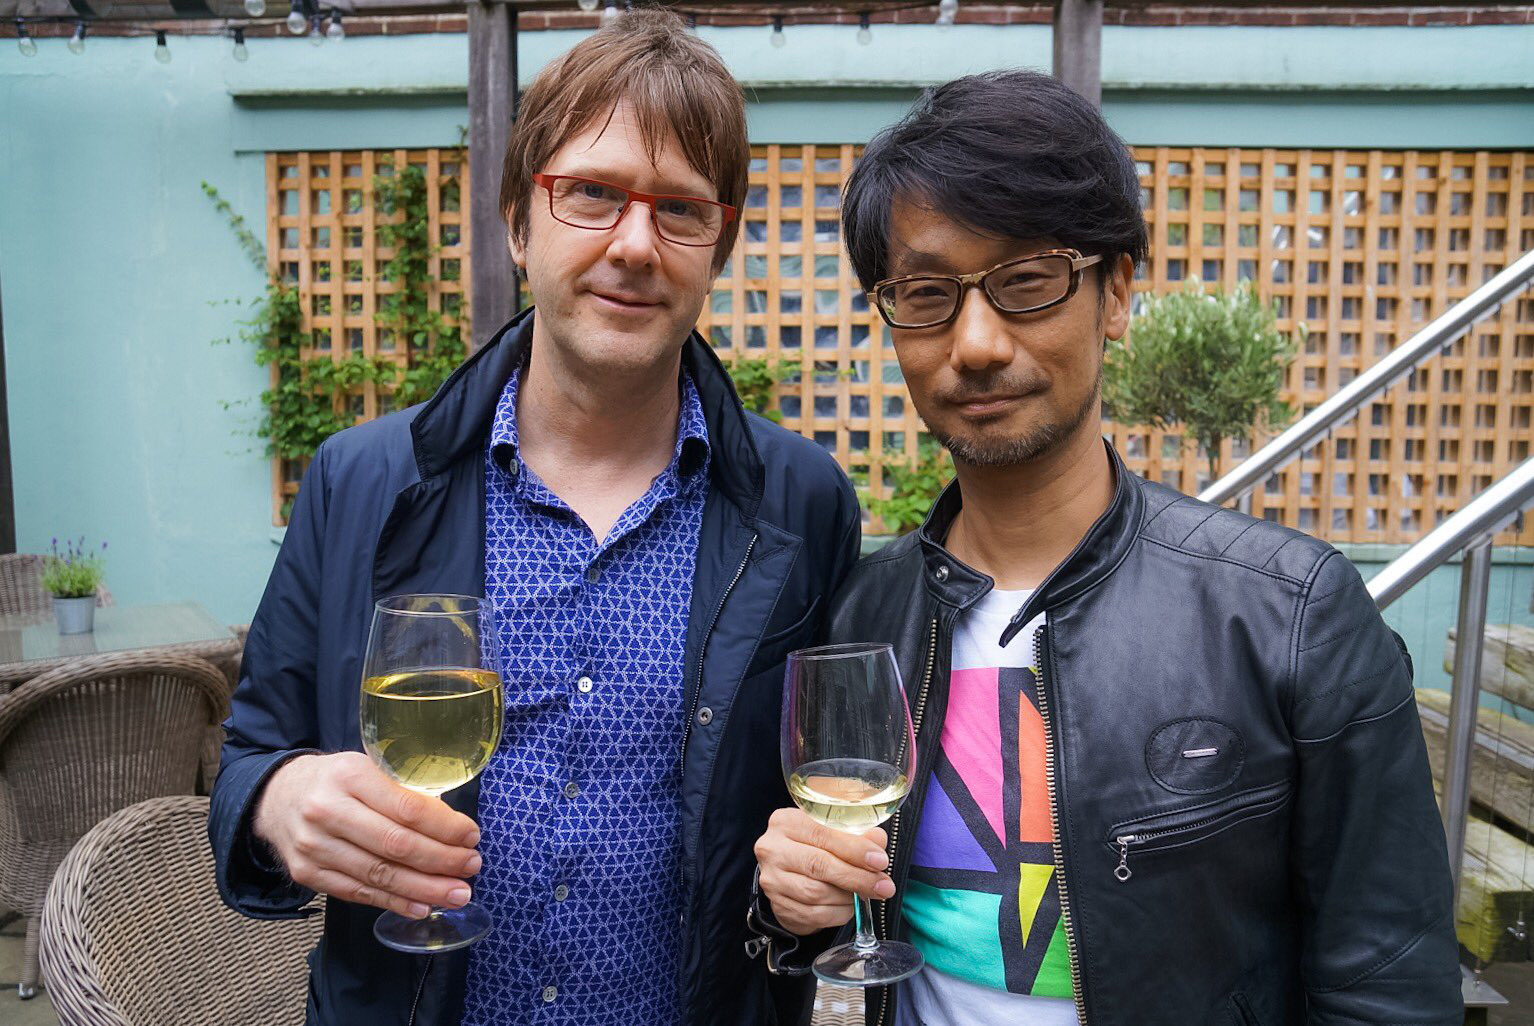 Hideo-Kojima-and-Mark-Cerny-Develop-Brig